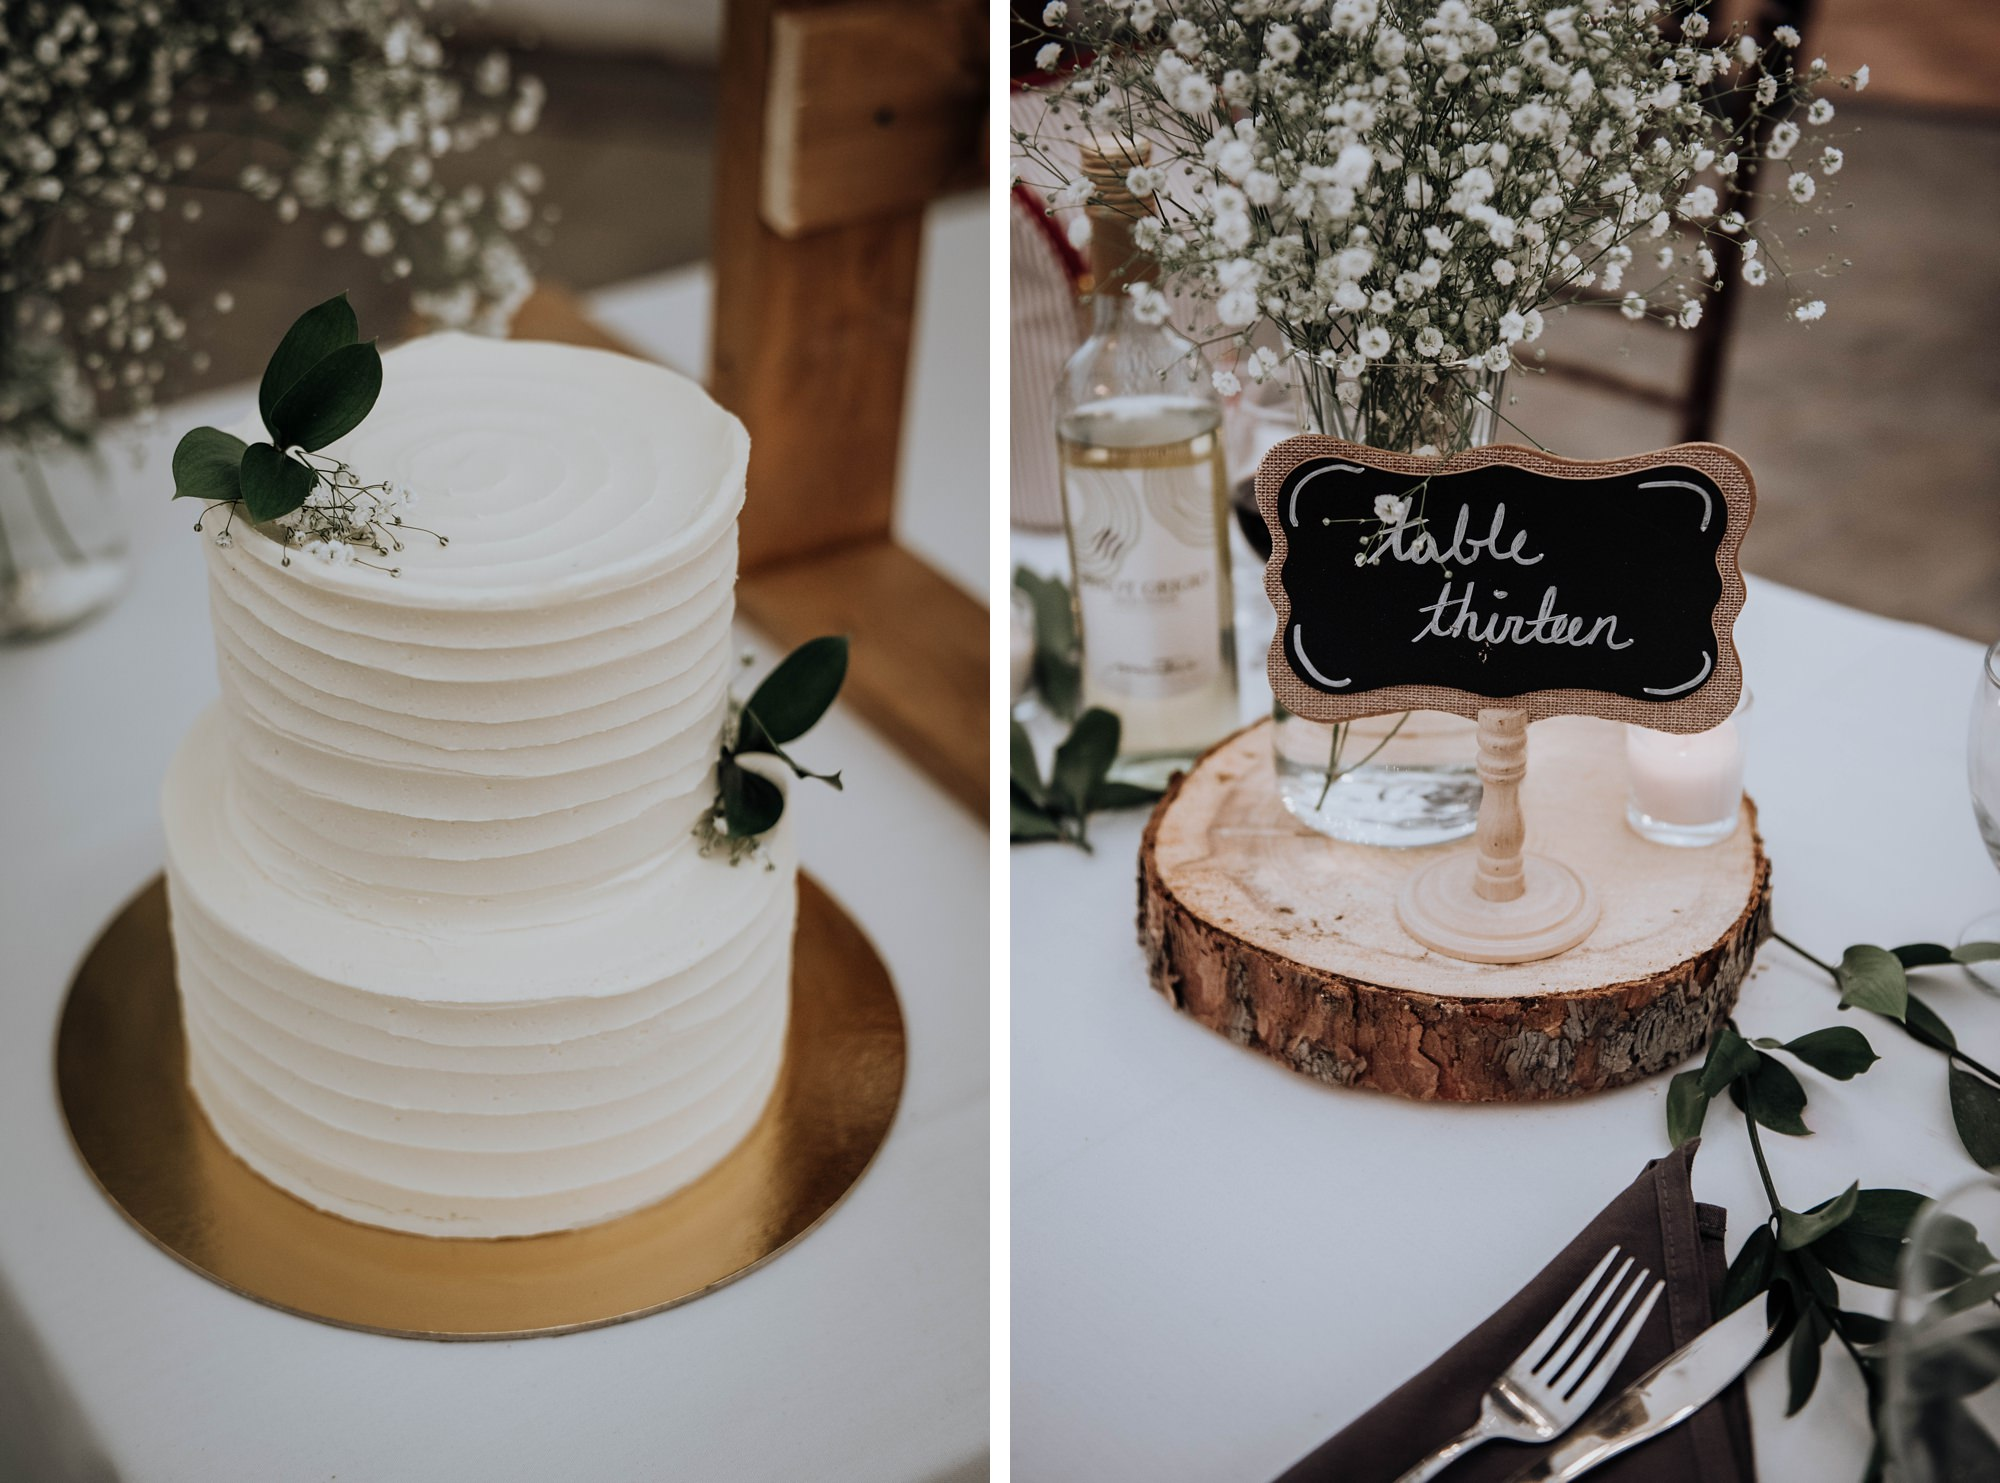 beautiful and simple wedding cake at Indi wedding at a Calgary golf club wedding